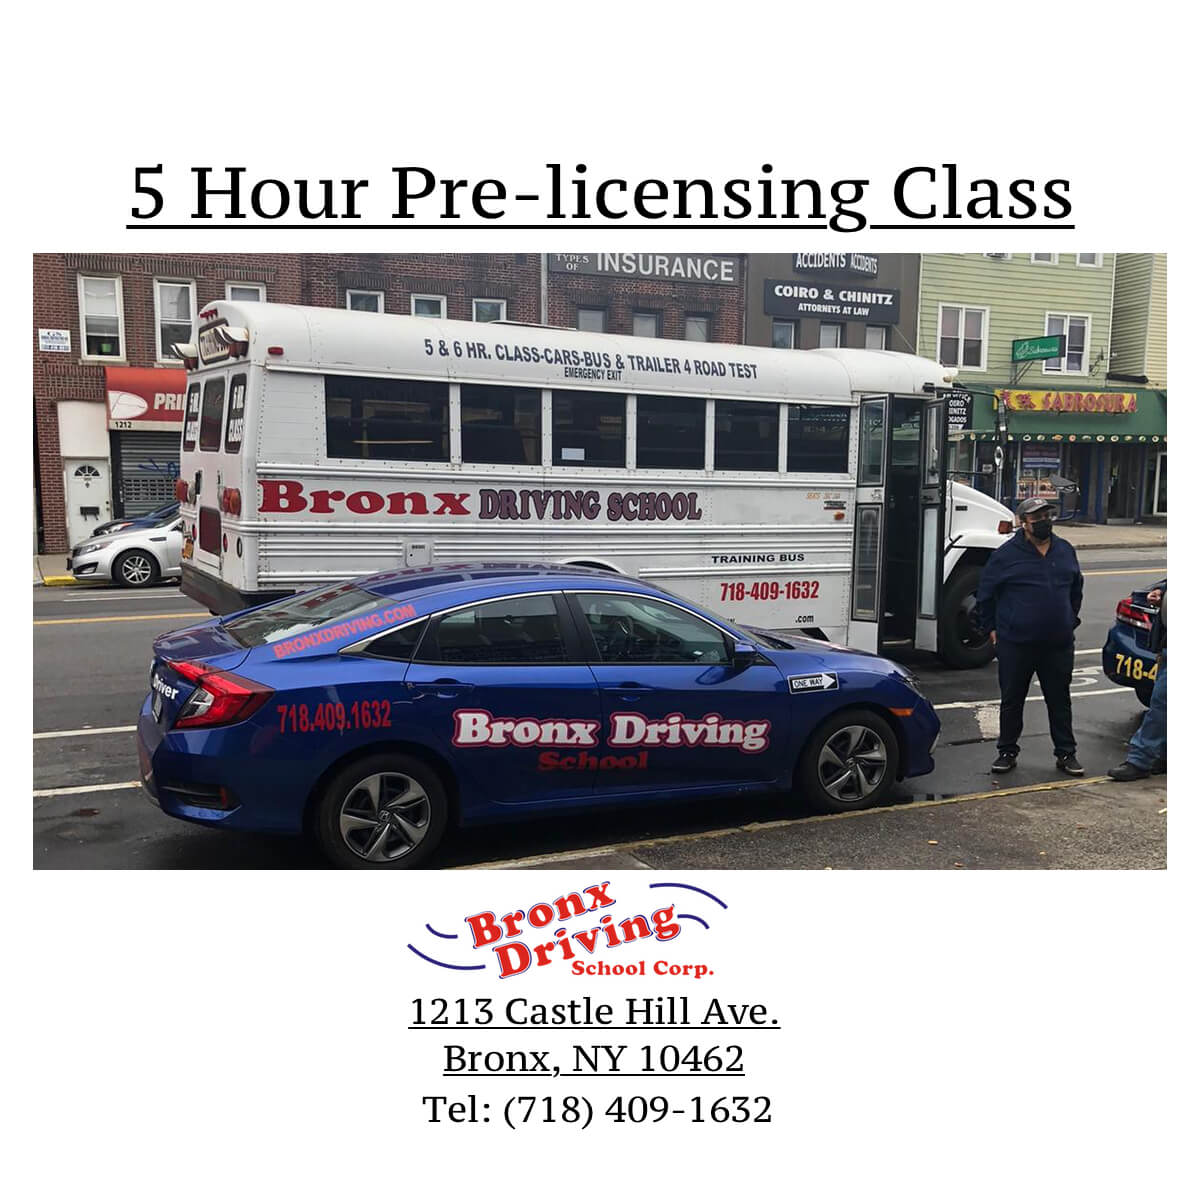 Bronx Driving School 5 Hour Pre-licensing Class